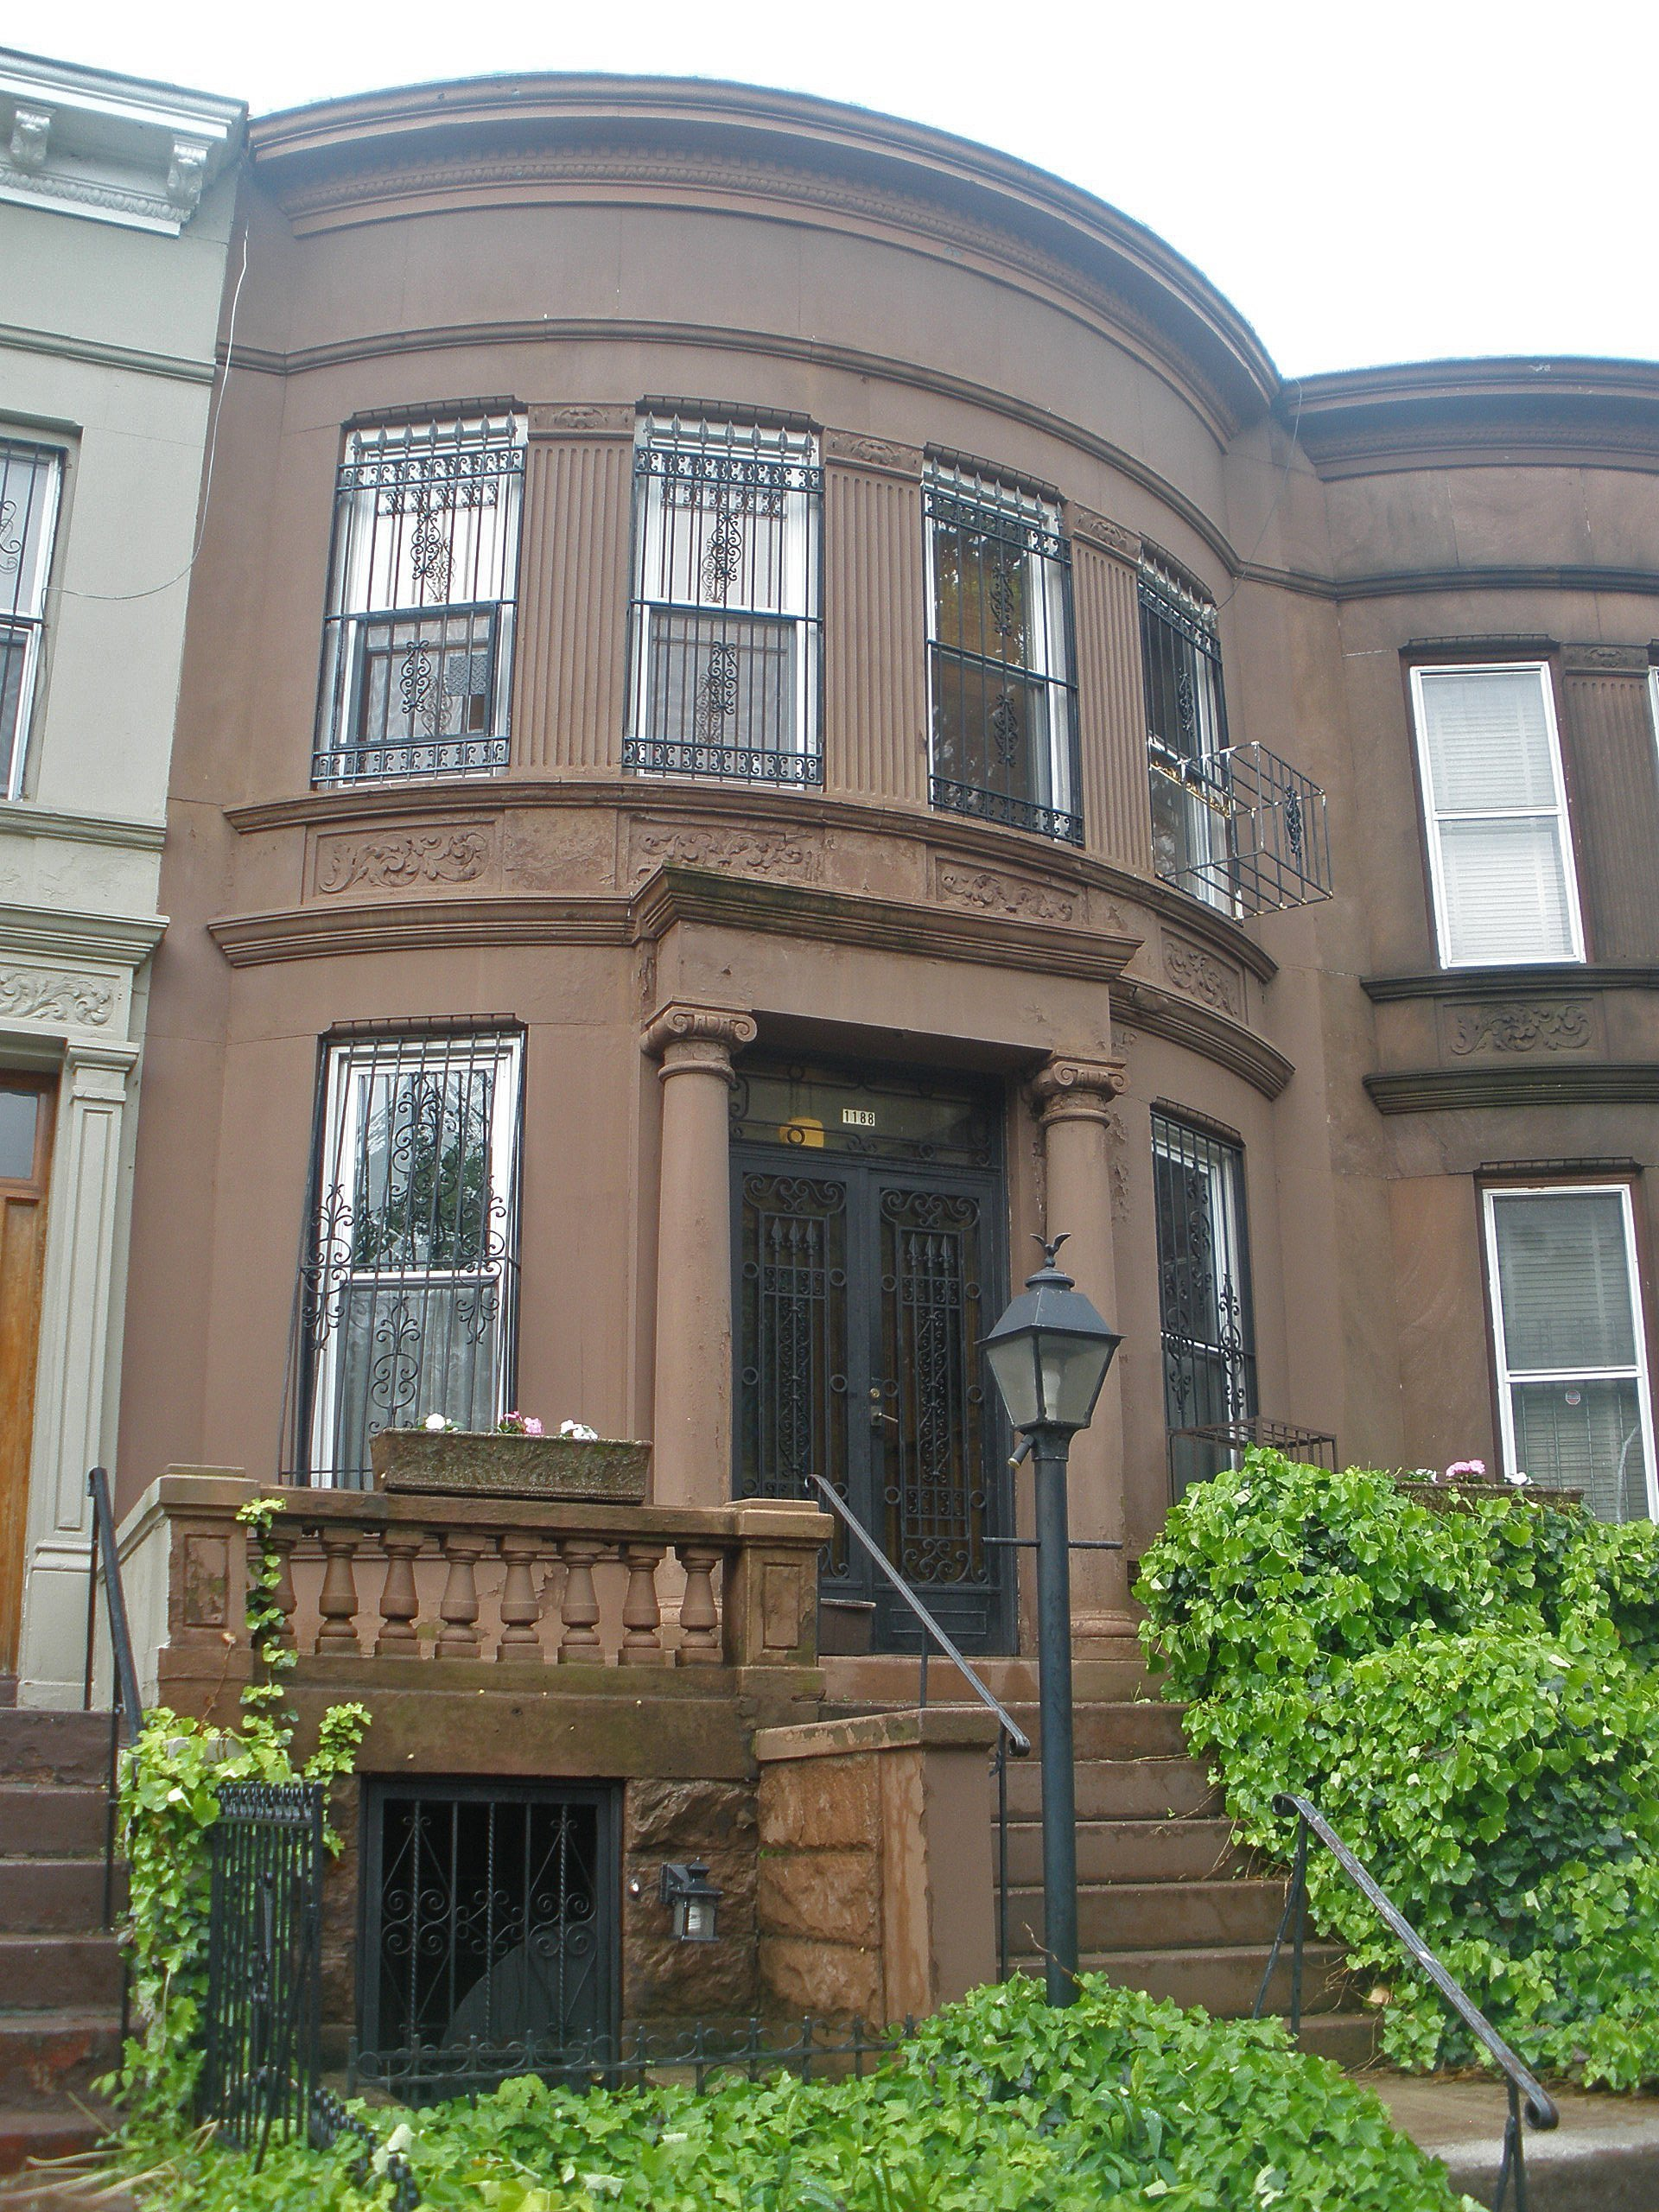 Crown heights single family brownstone for sale brooklyn for Sale house in brooklyn